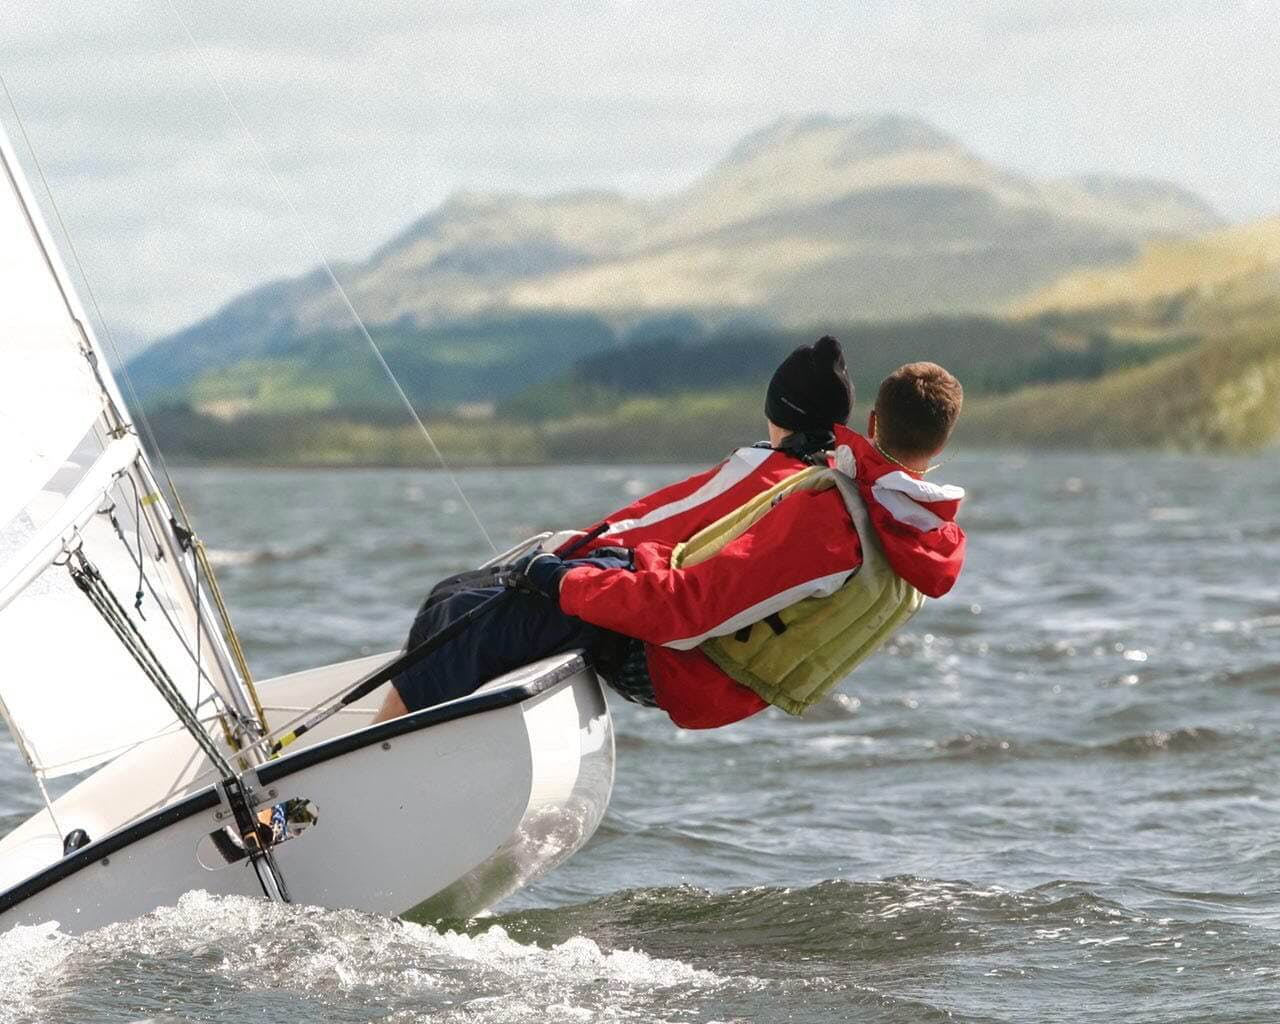 Water based activities on Loch Lomond